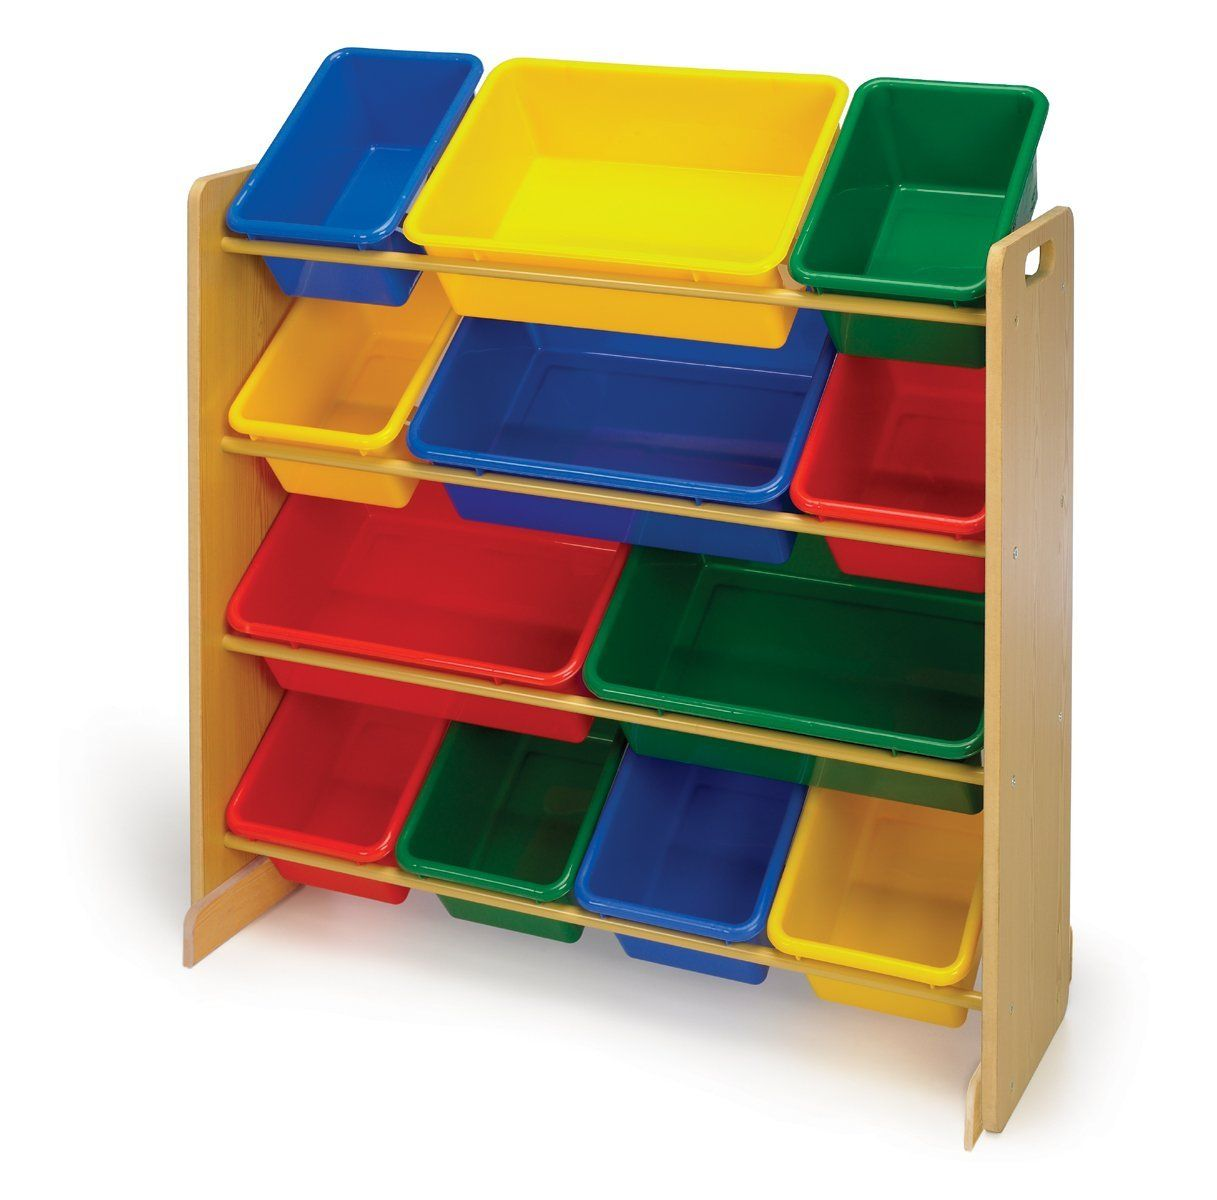 New Bookcase Toy Box White Finish Bedroom Playroom Child: Tot Tutors Toy Organizer, Primary Colors